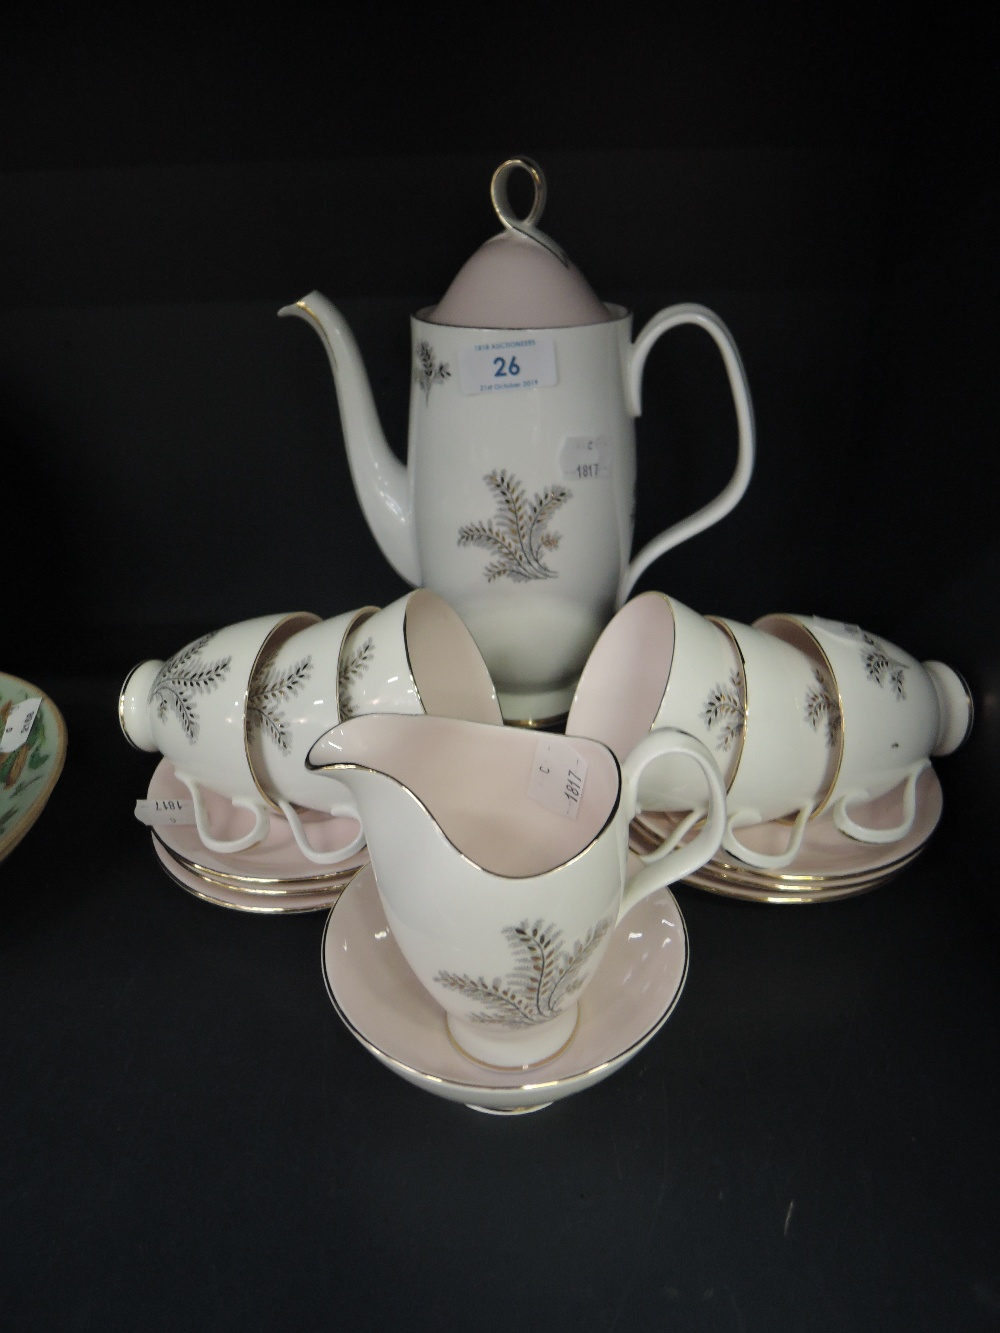 Lot 26 - A part coffee service by Royal Albert in the Sugar Candy design